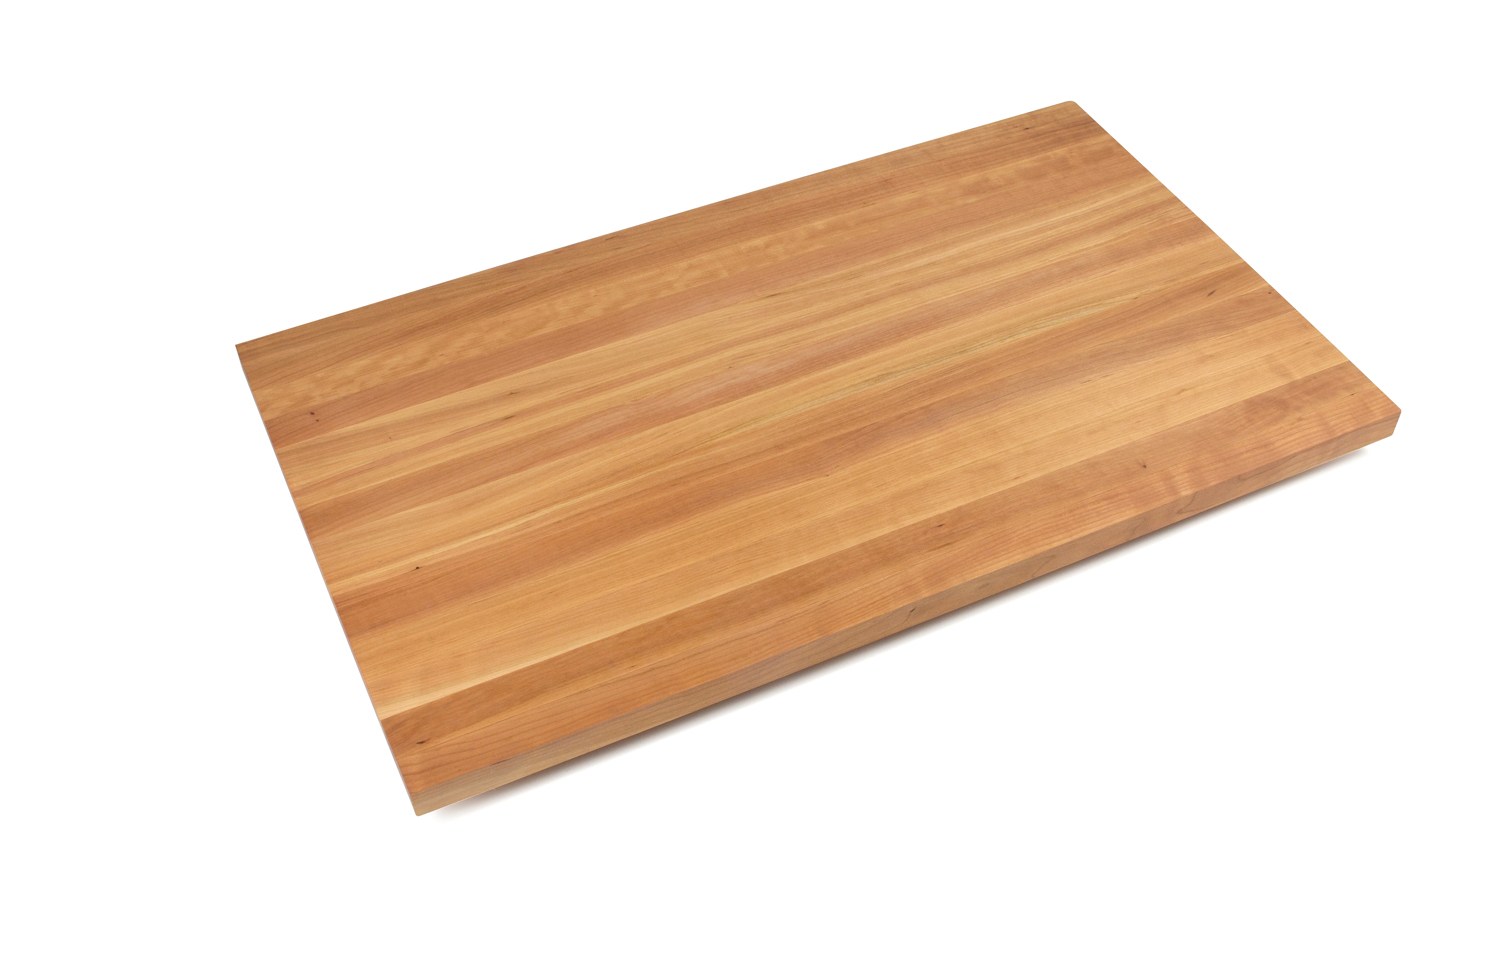 cherry edge grain butcher block counters 1.5 inch thick, 36 inches wide